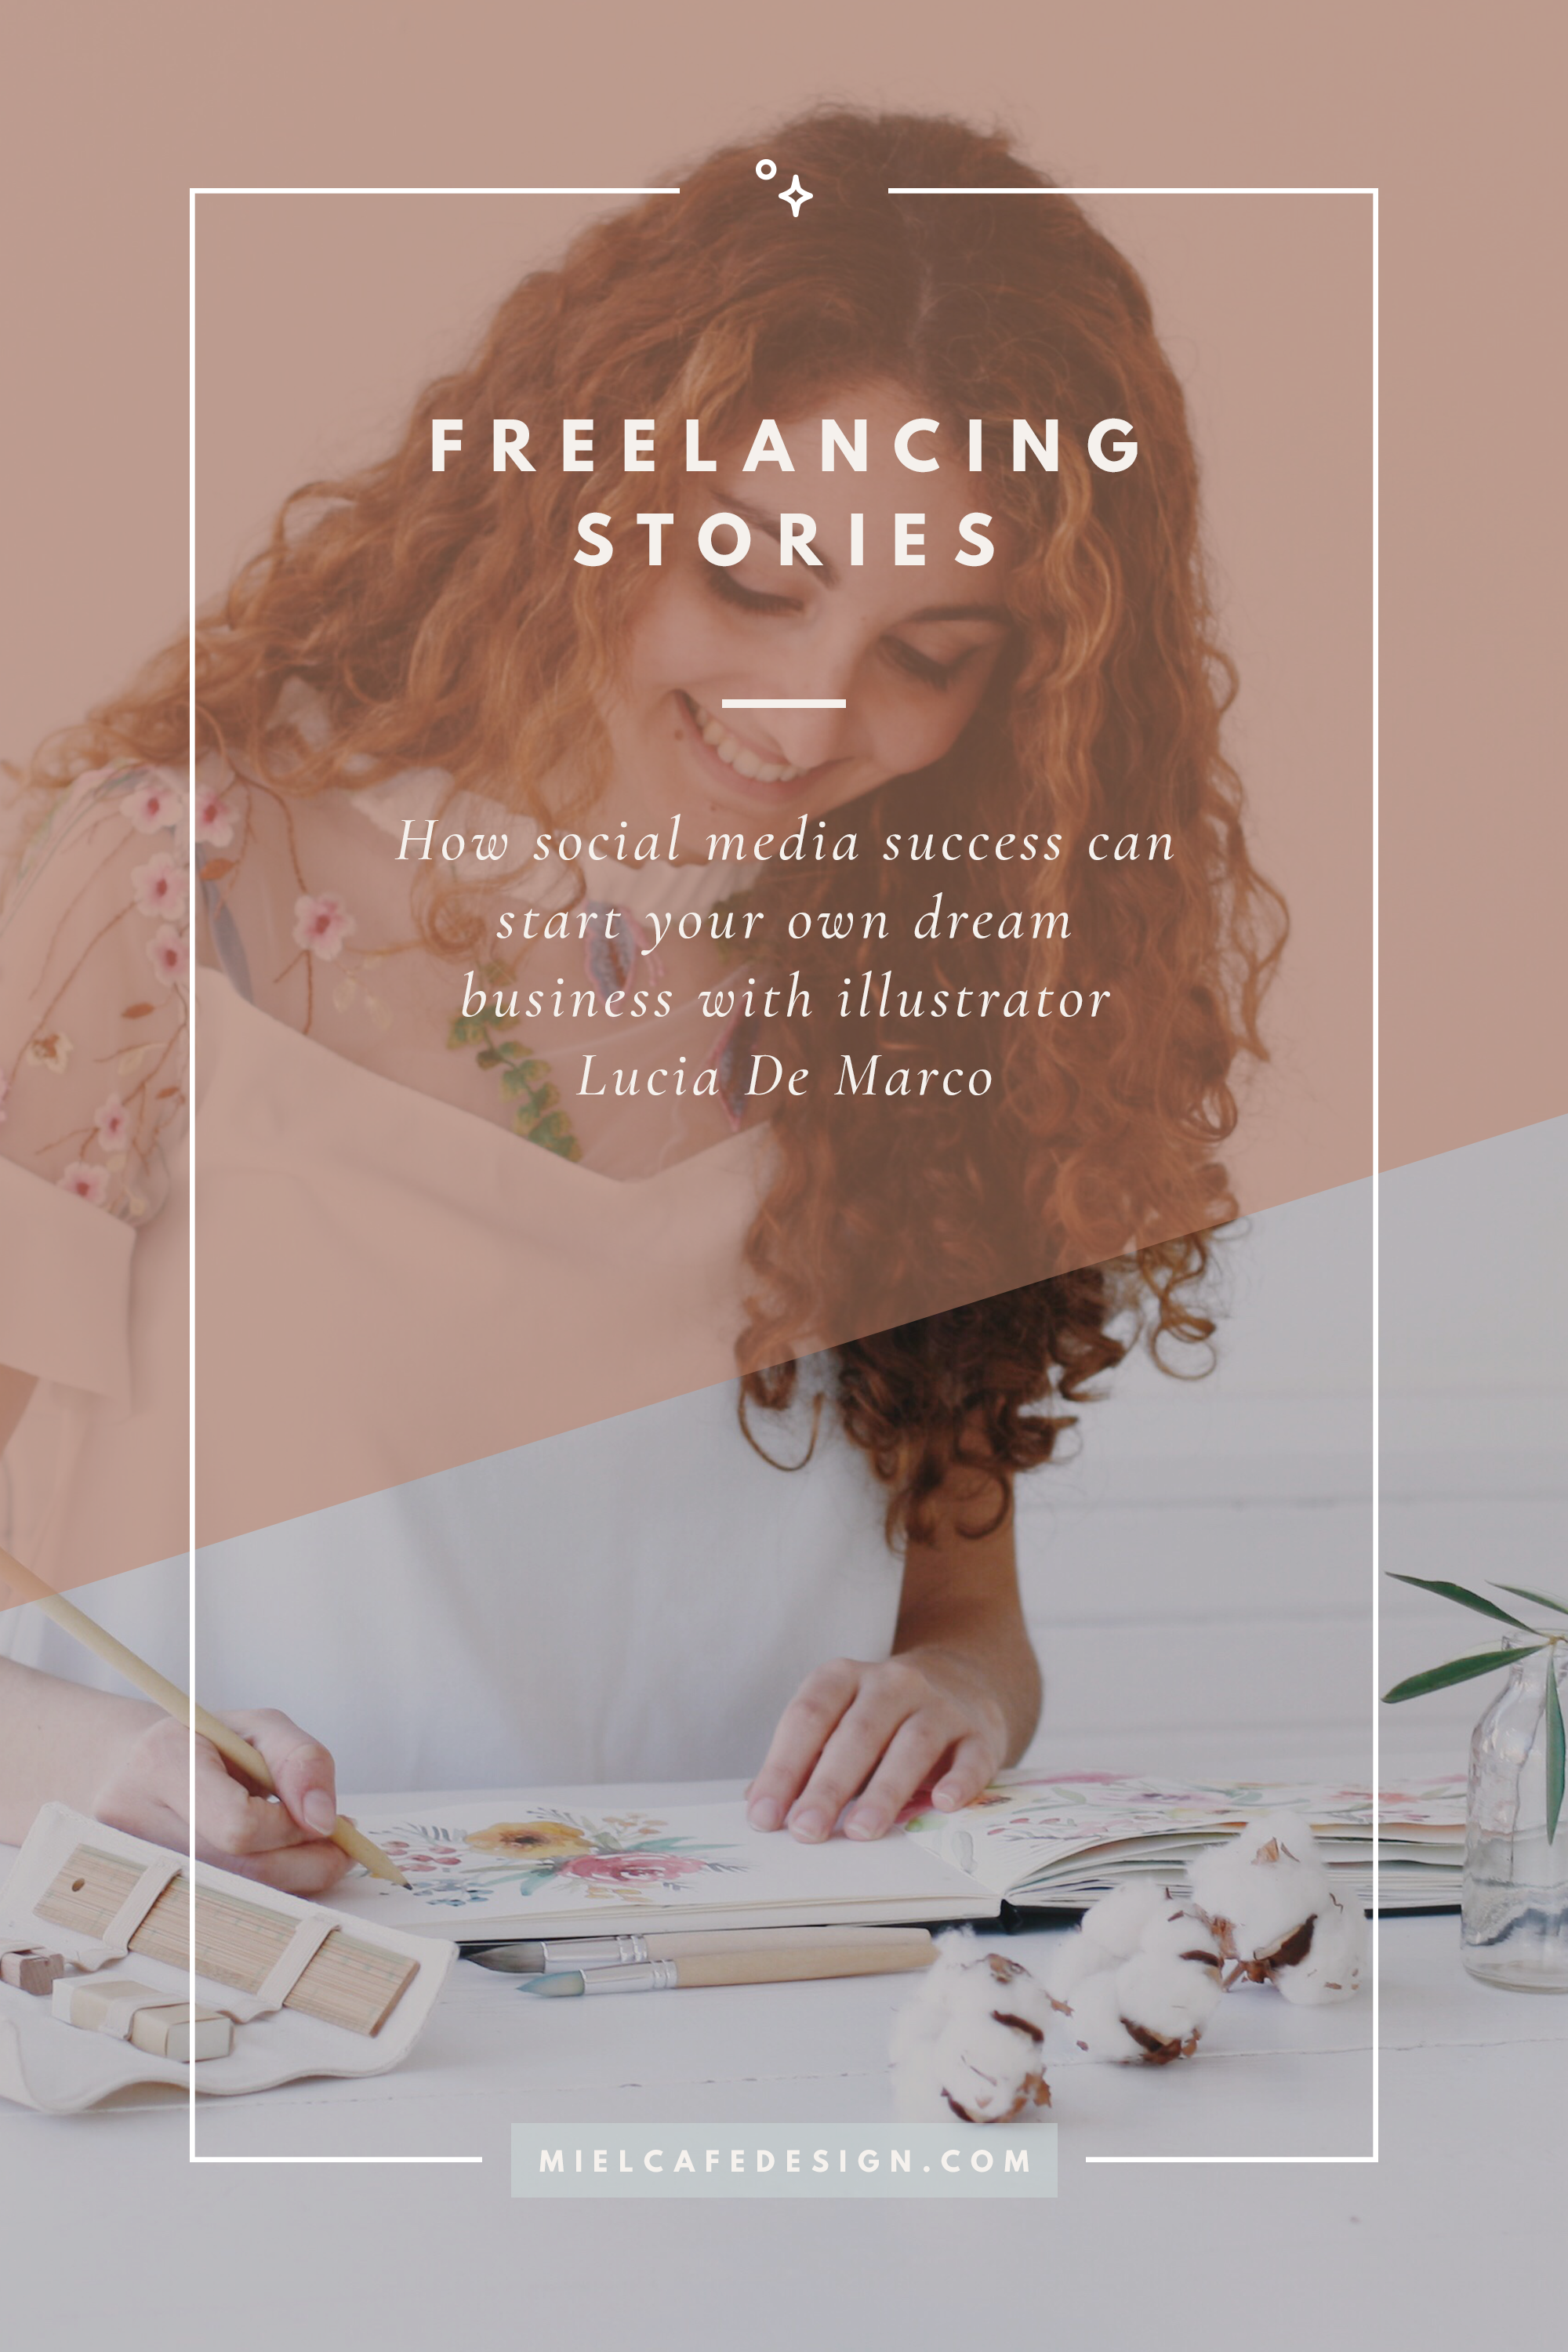 Freelancing Stories: 'How Instagram Started My Business' with illustrator Lucia De Marco